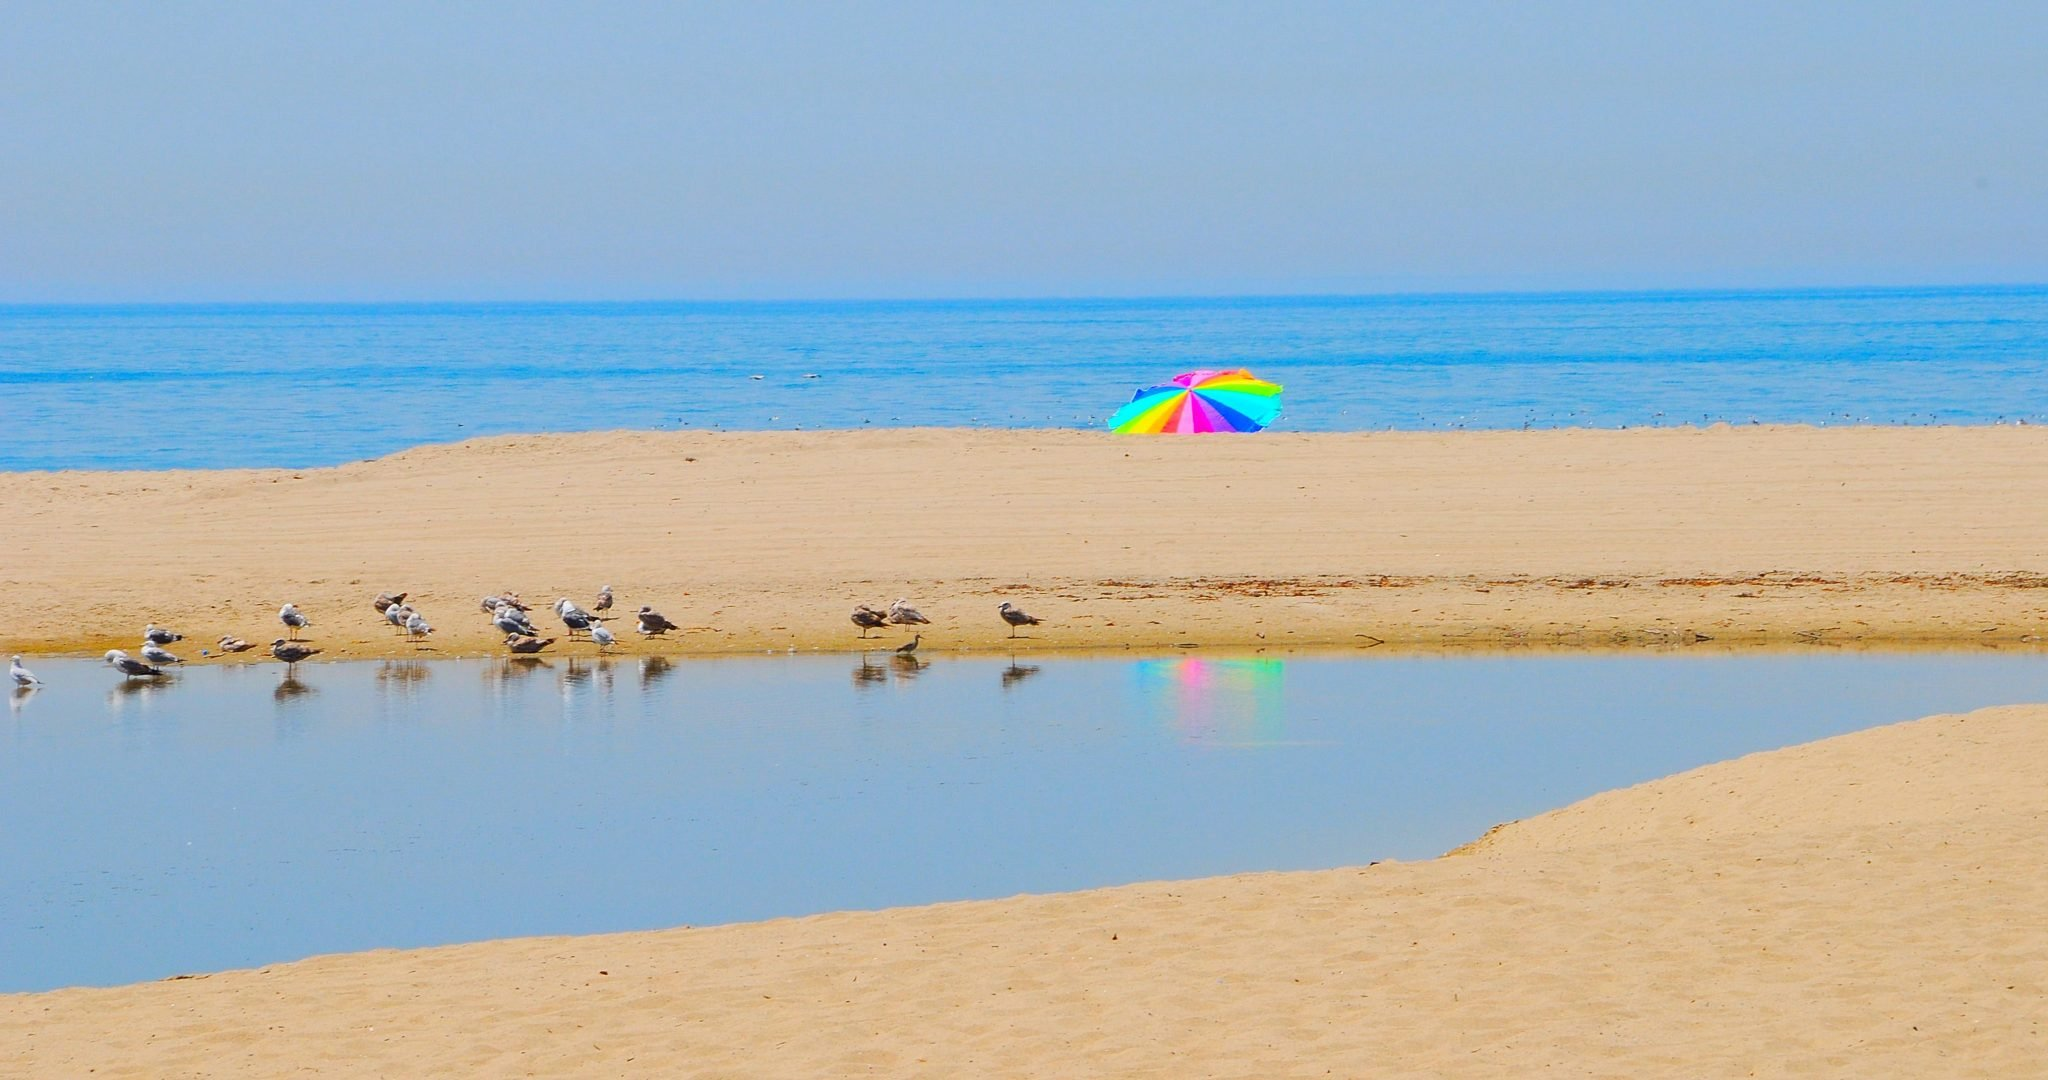 Beach with birds and colorful umbrella in the background